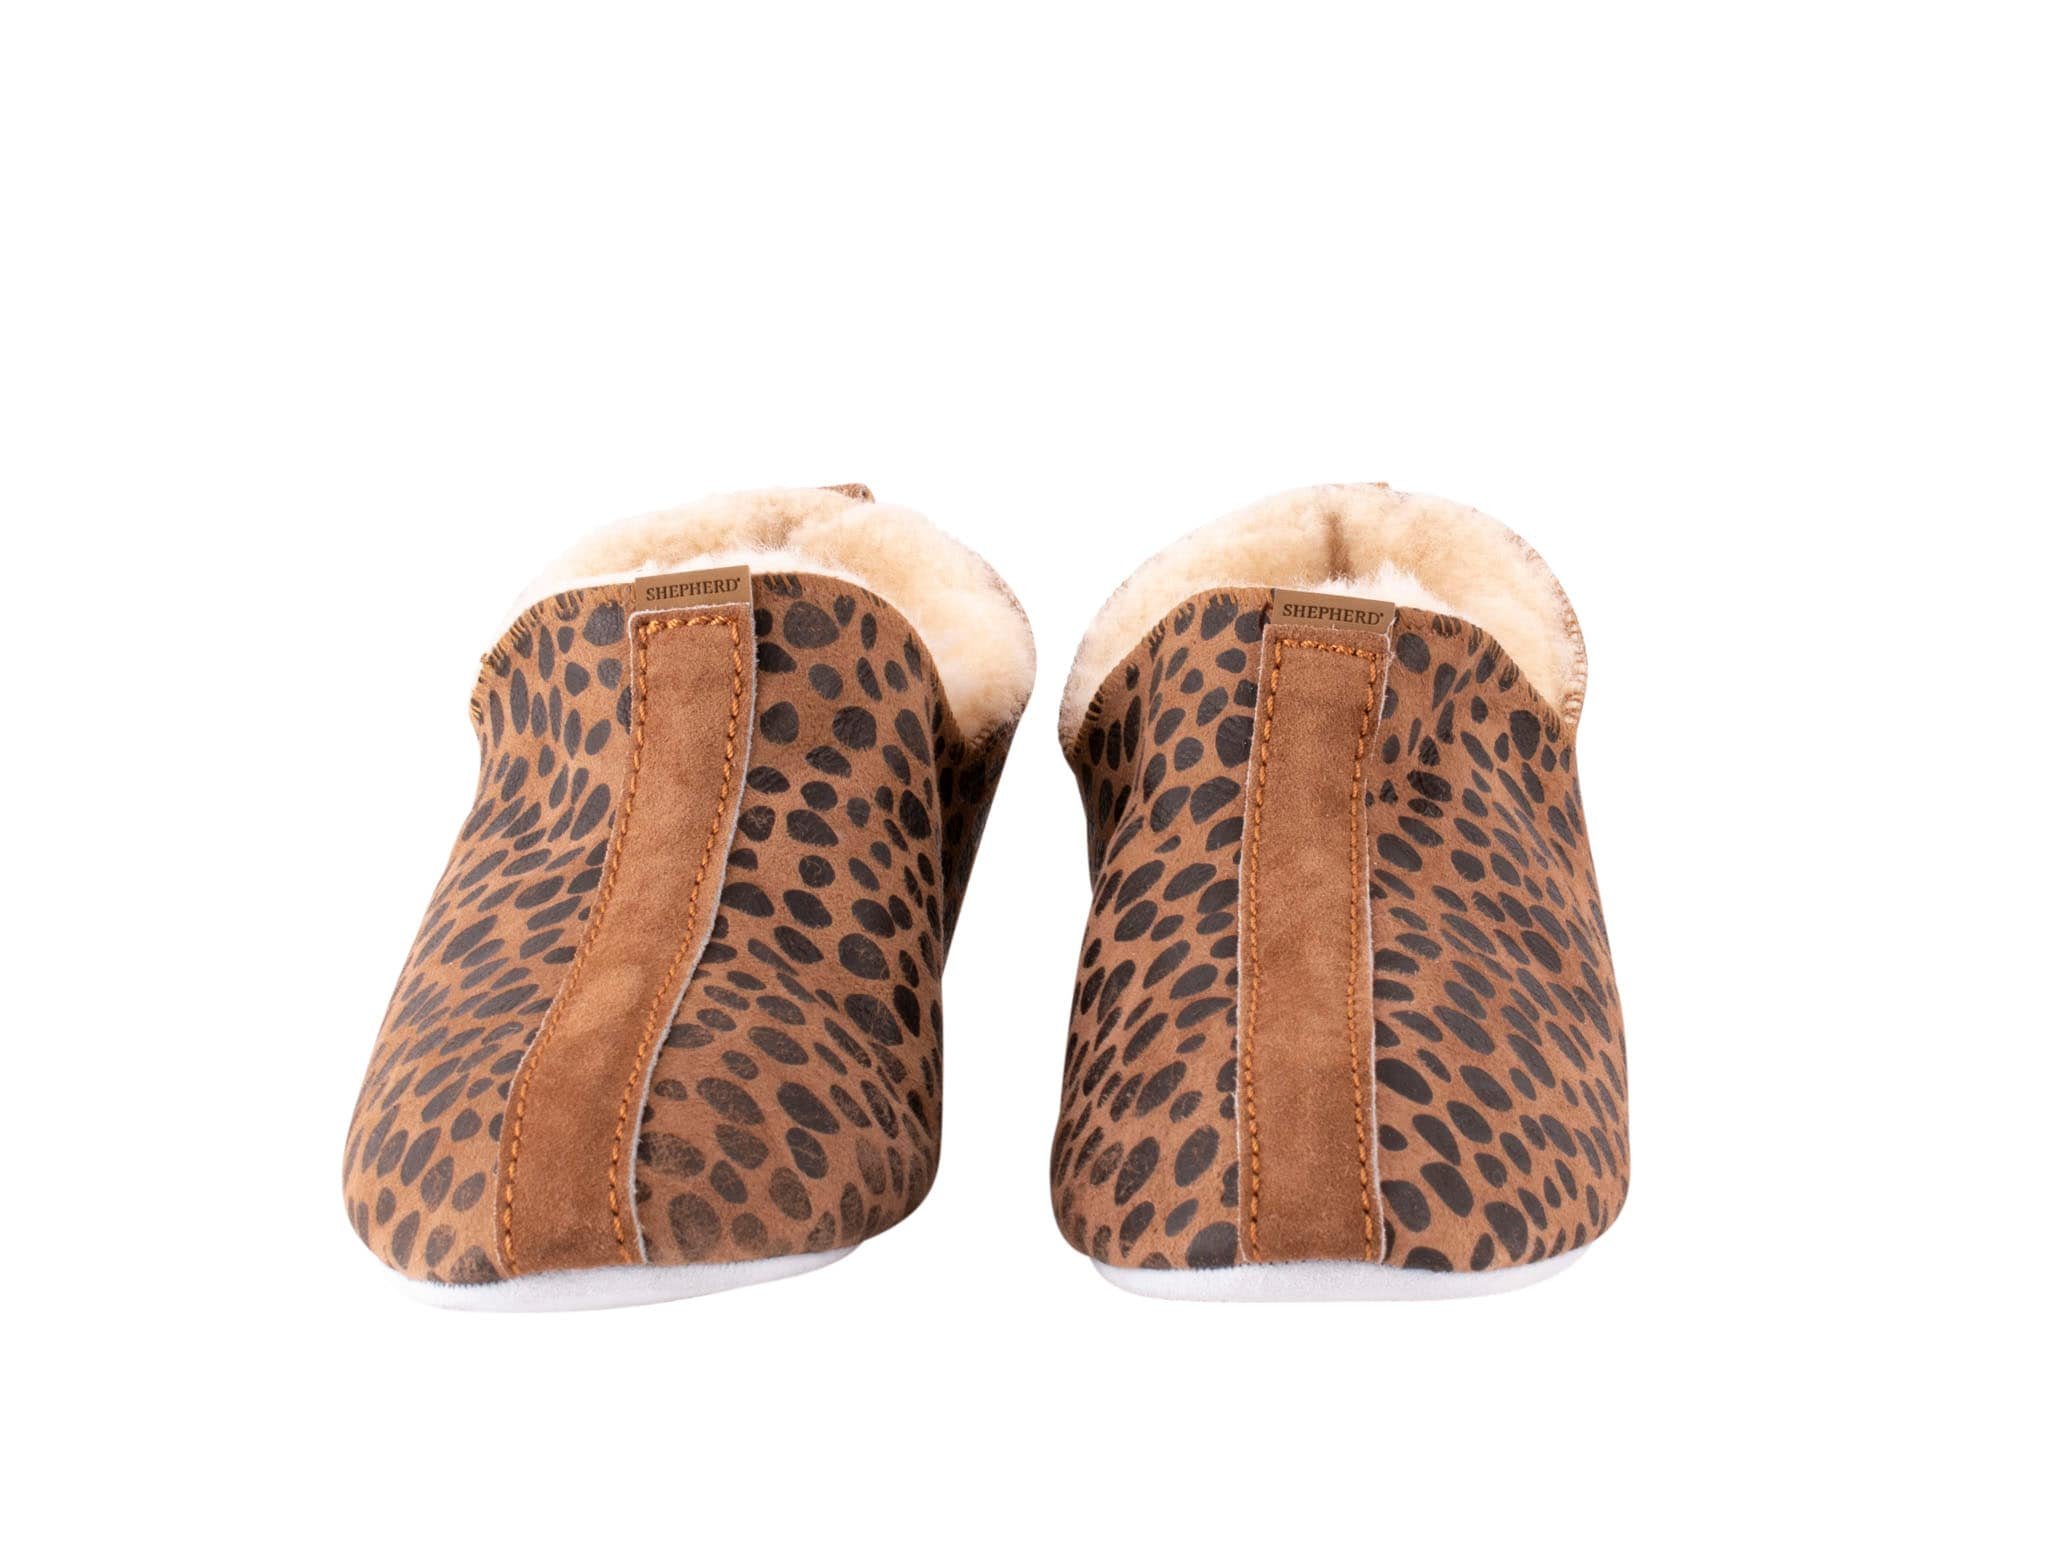 Lina sheepskin slippers Leopard